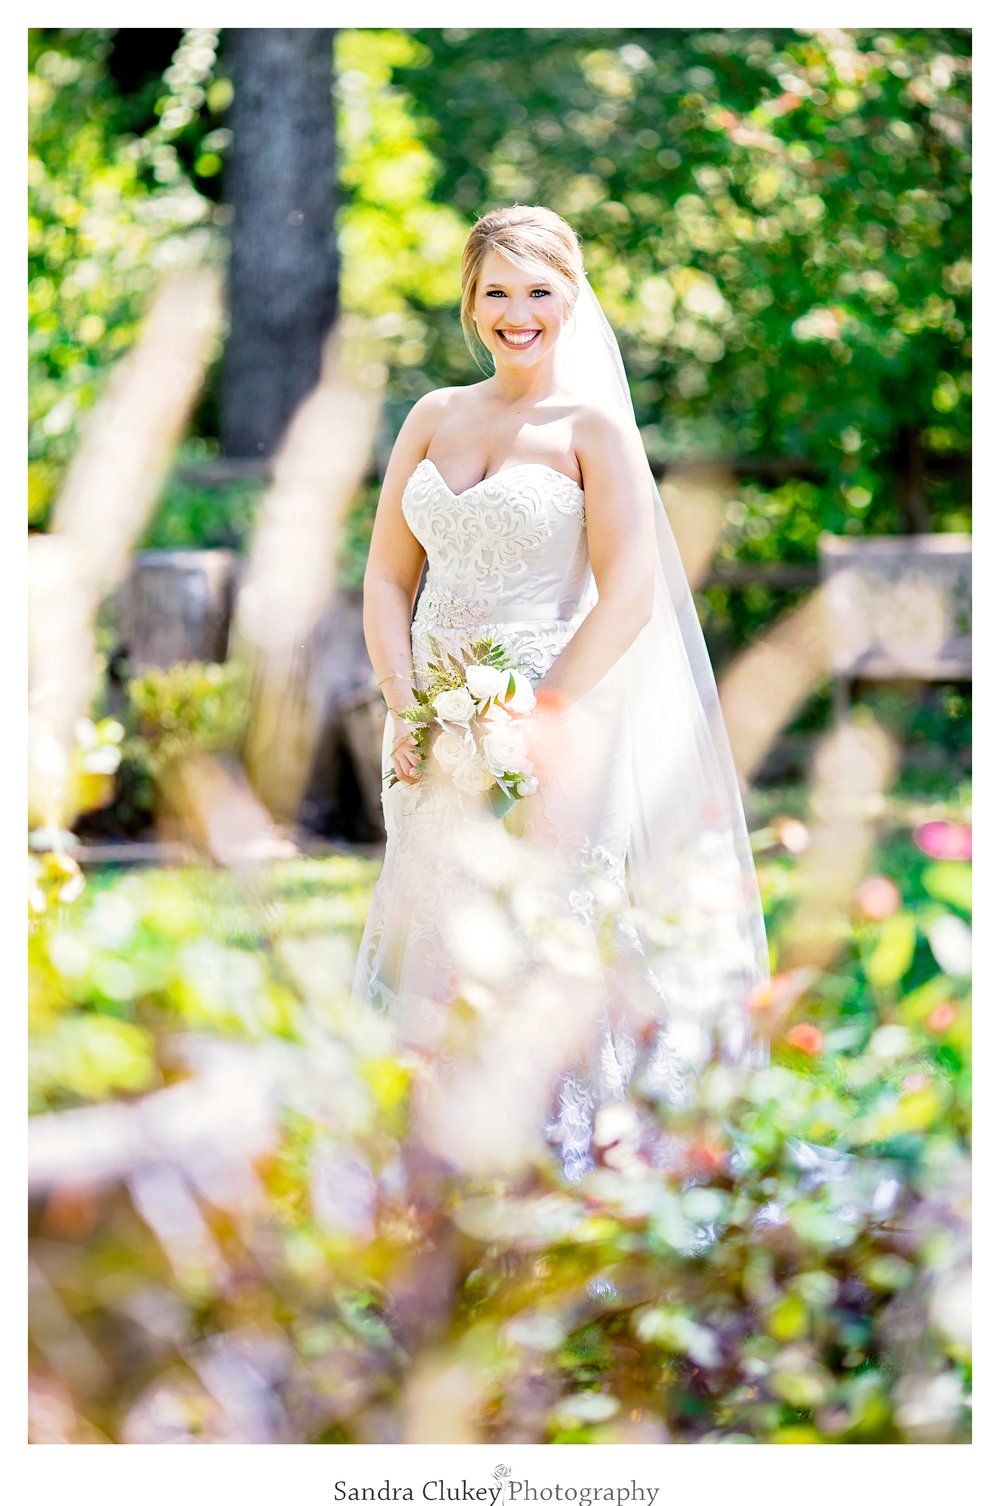 Brides remarkable image of beauty. Tennessee RiverPlace, Chattanooga TN